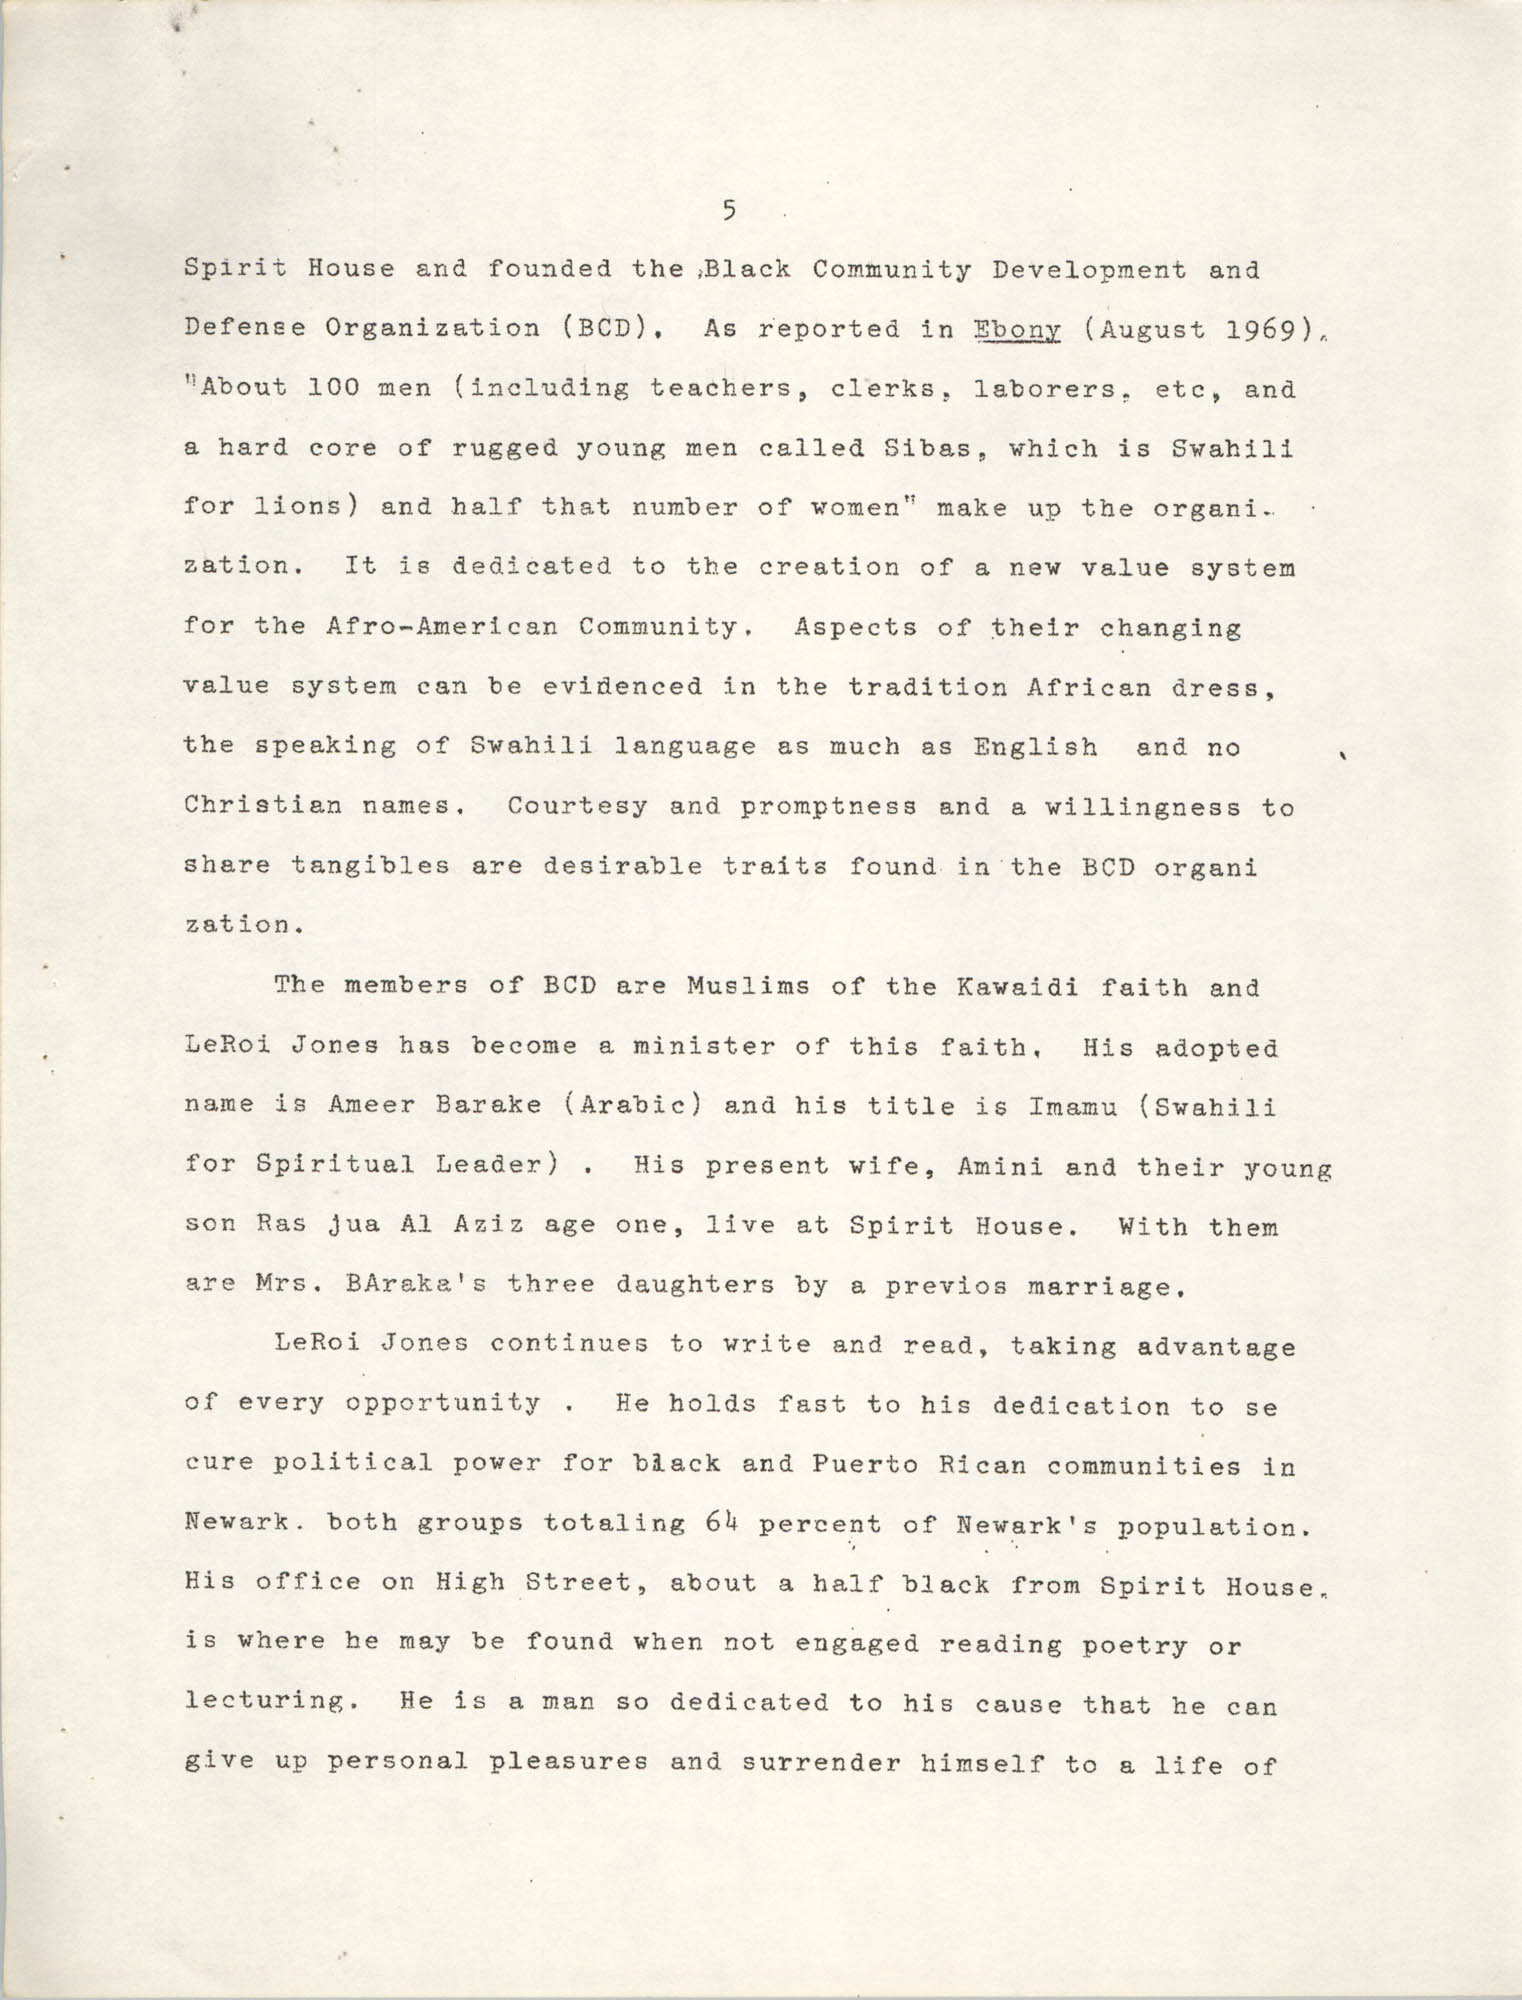 Center for African and African-American Studies Bibliography No. 2, Page 5